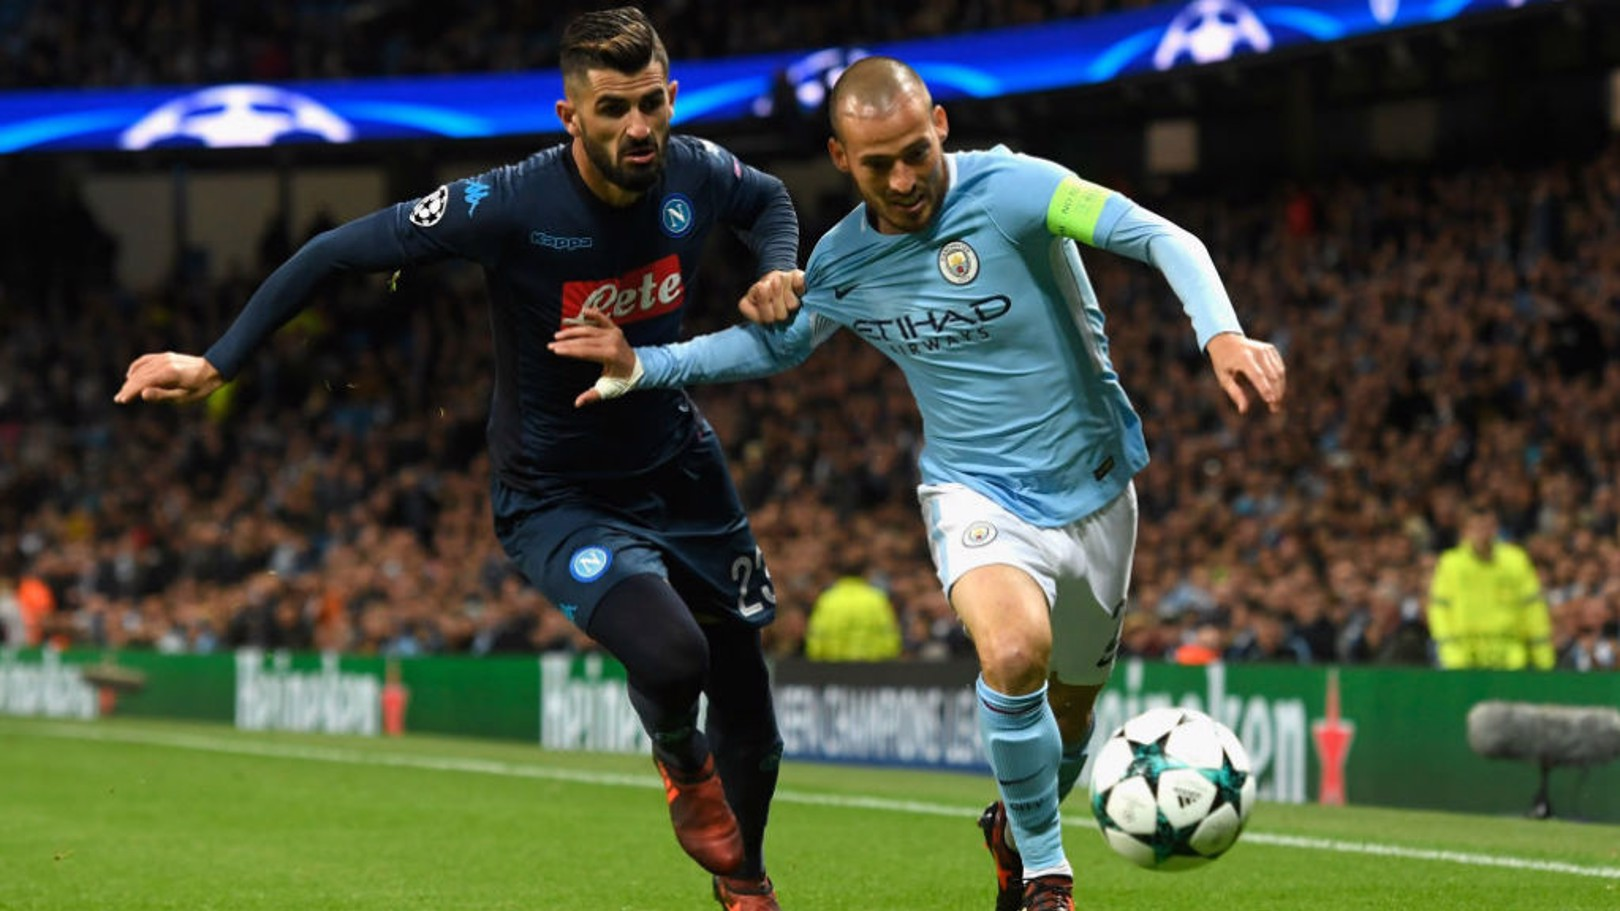 LEADING MAN: David Silva puts City on the front-foot again against Napoli in a tight Etihad Stadium match this season